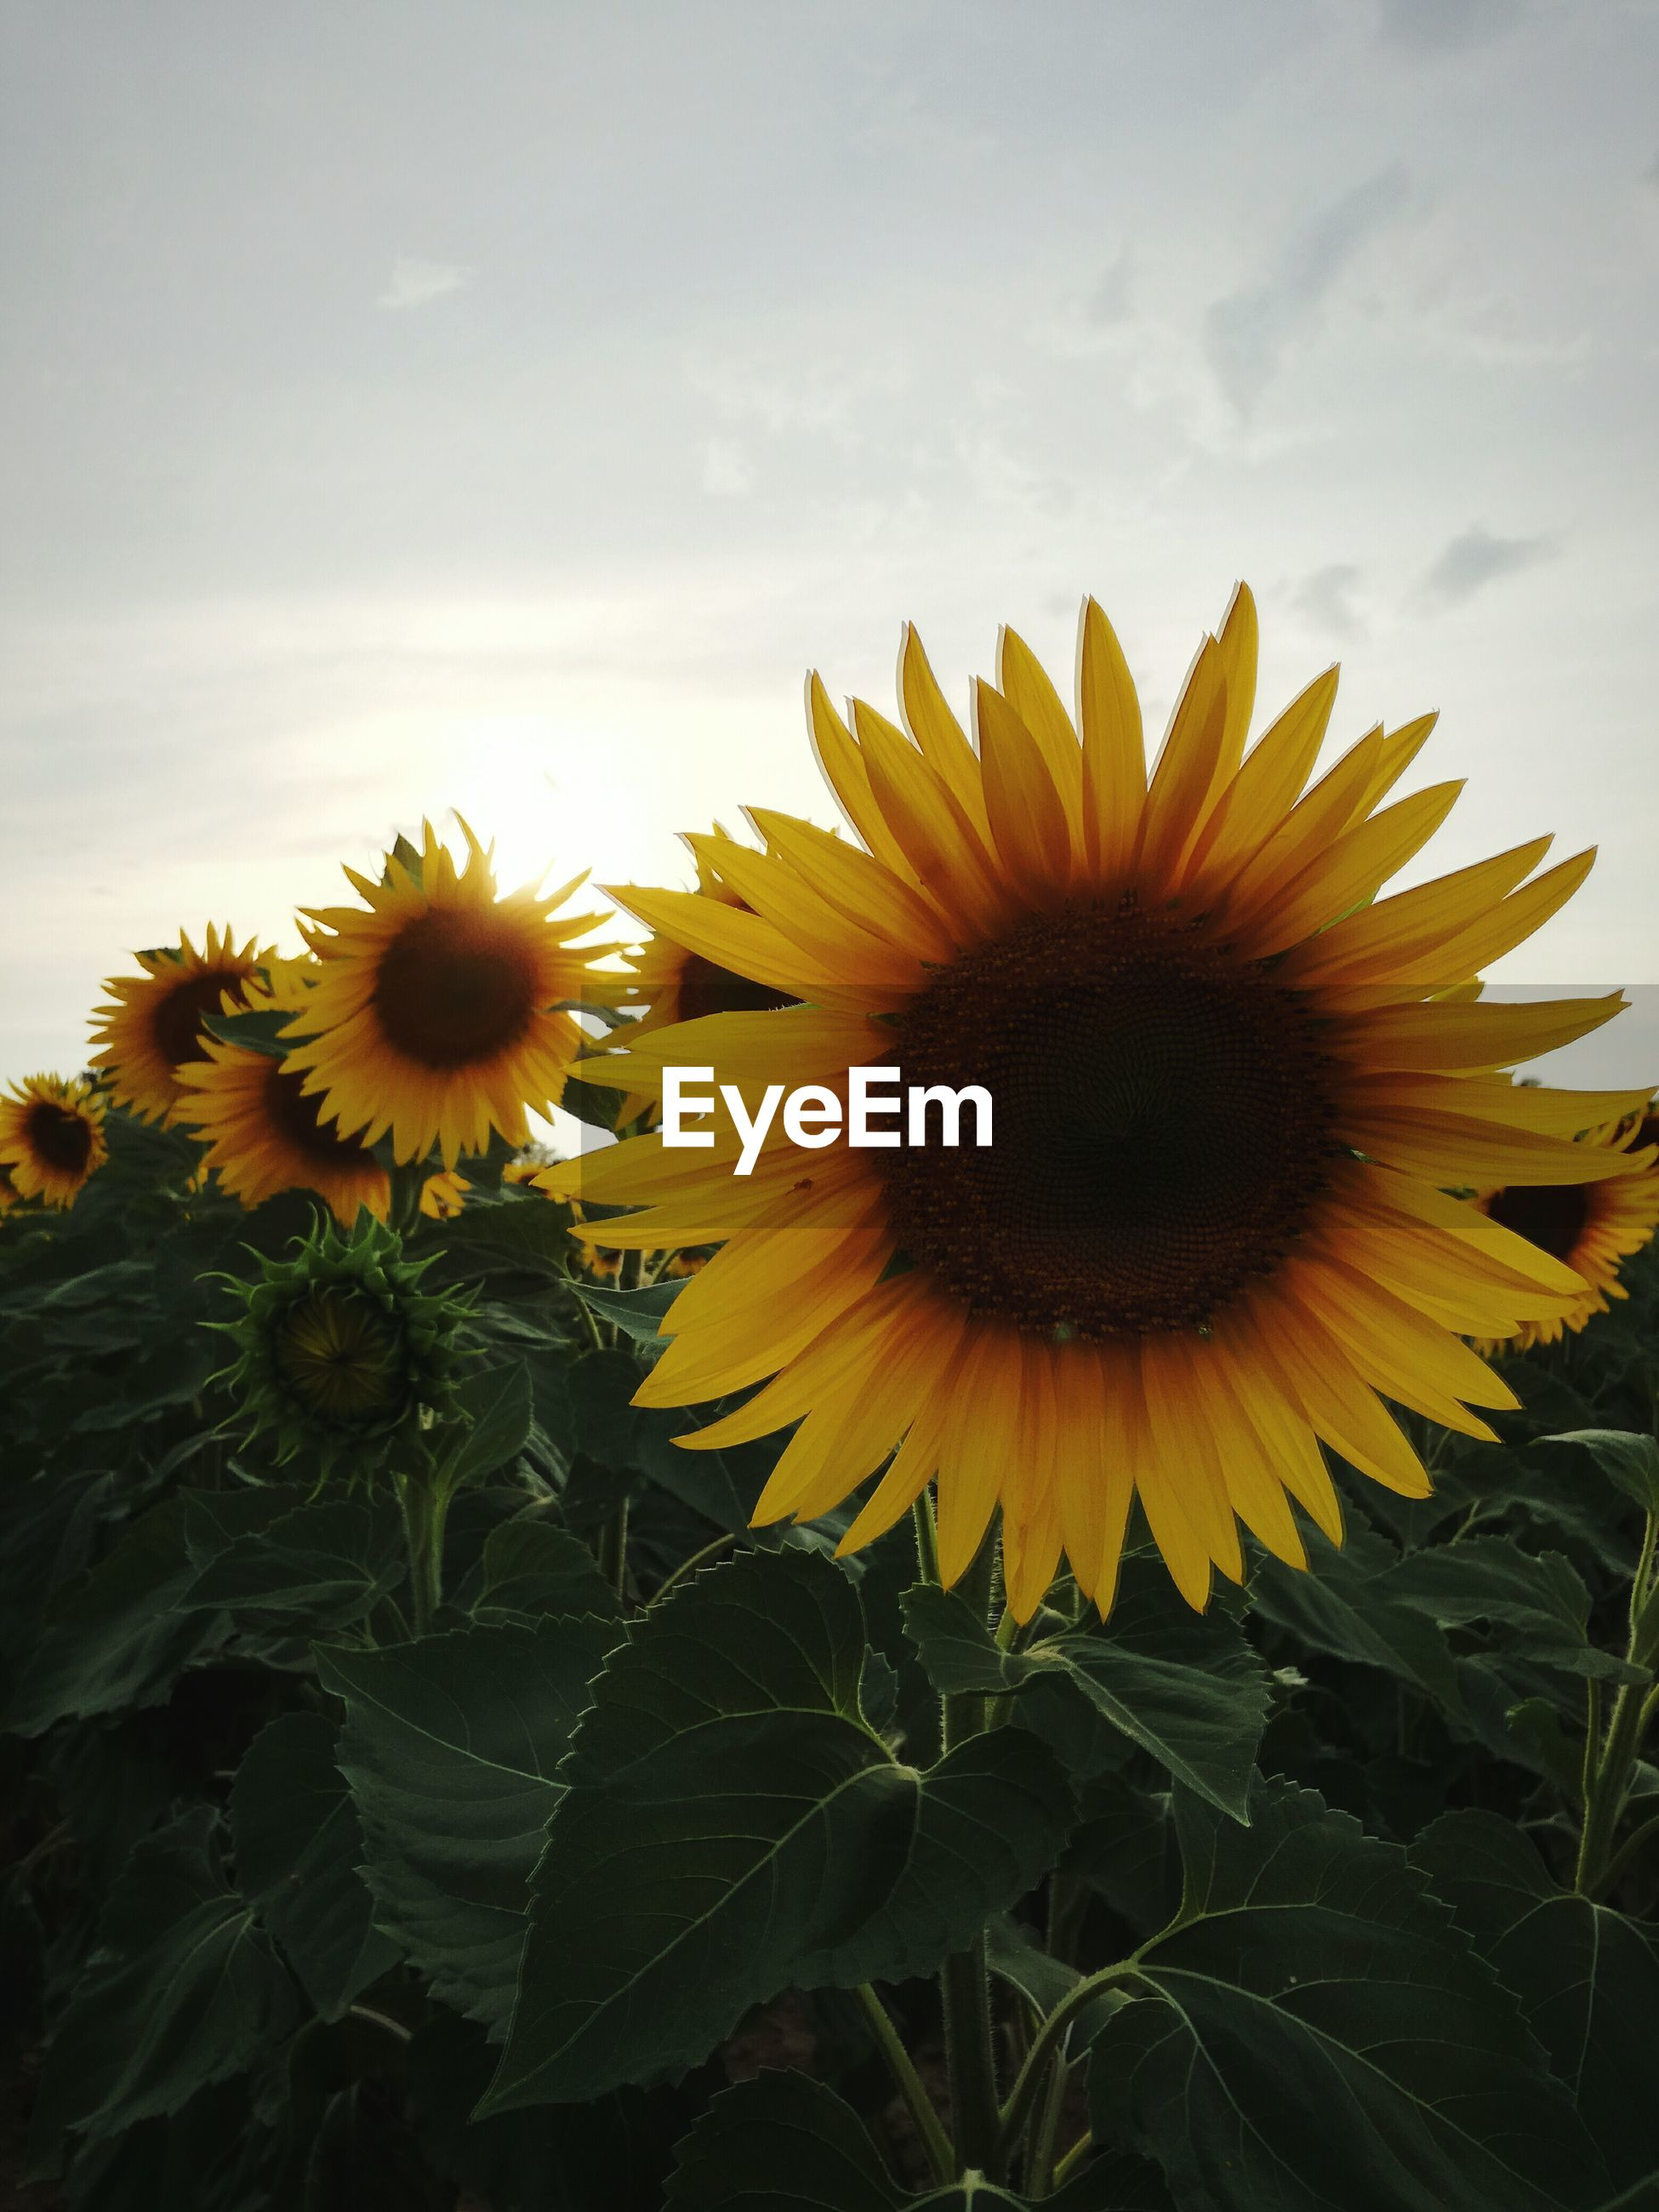 flower, yellow, freshness, fragility, sunflower, petal, flower head, growth, beauty in nature, blooming, pollen, plant, nature, sky, close-up, in bloom, day, no people, stem, outdoors, focus on foreground, cloud - sky, botany, tranquility, blossom, cloud, green color, growing